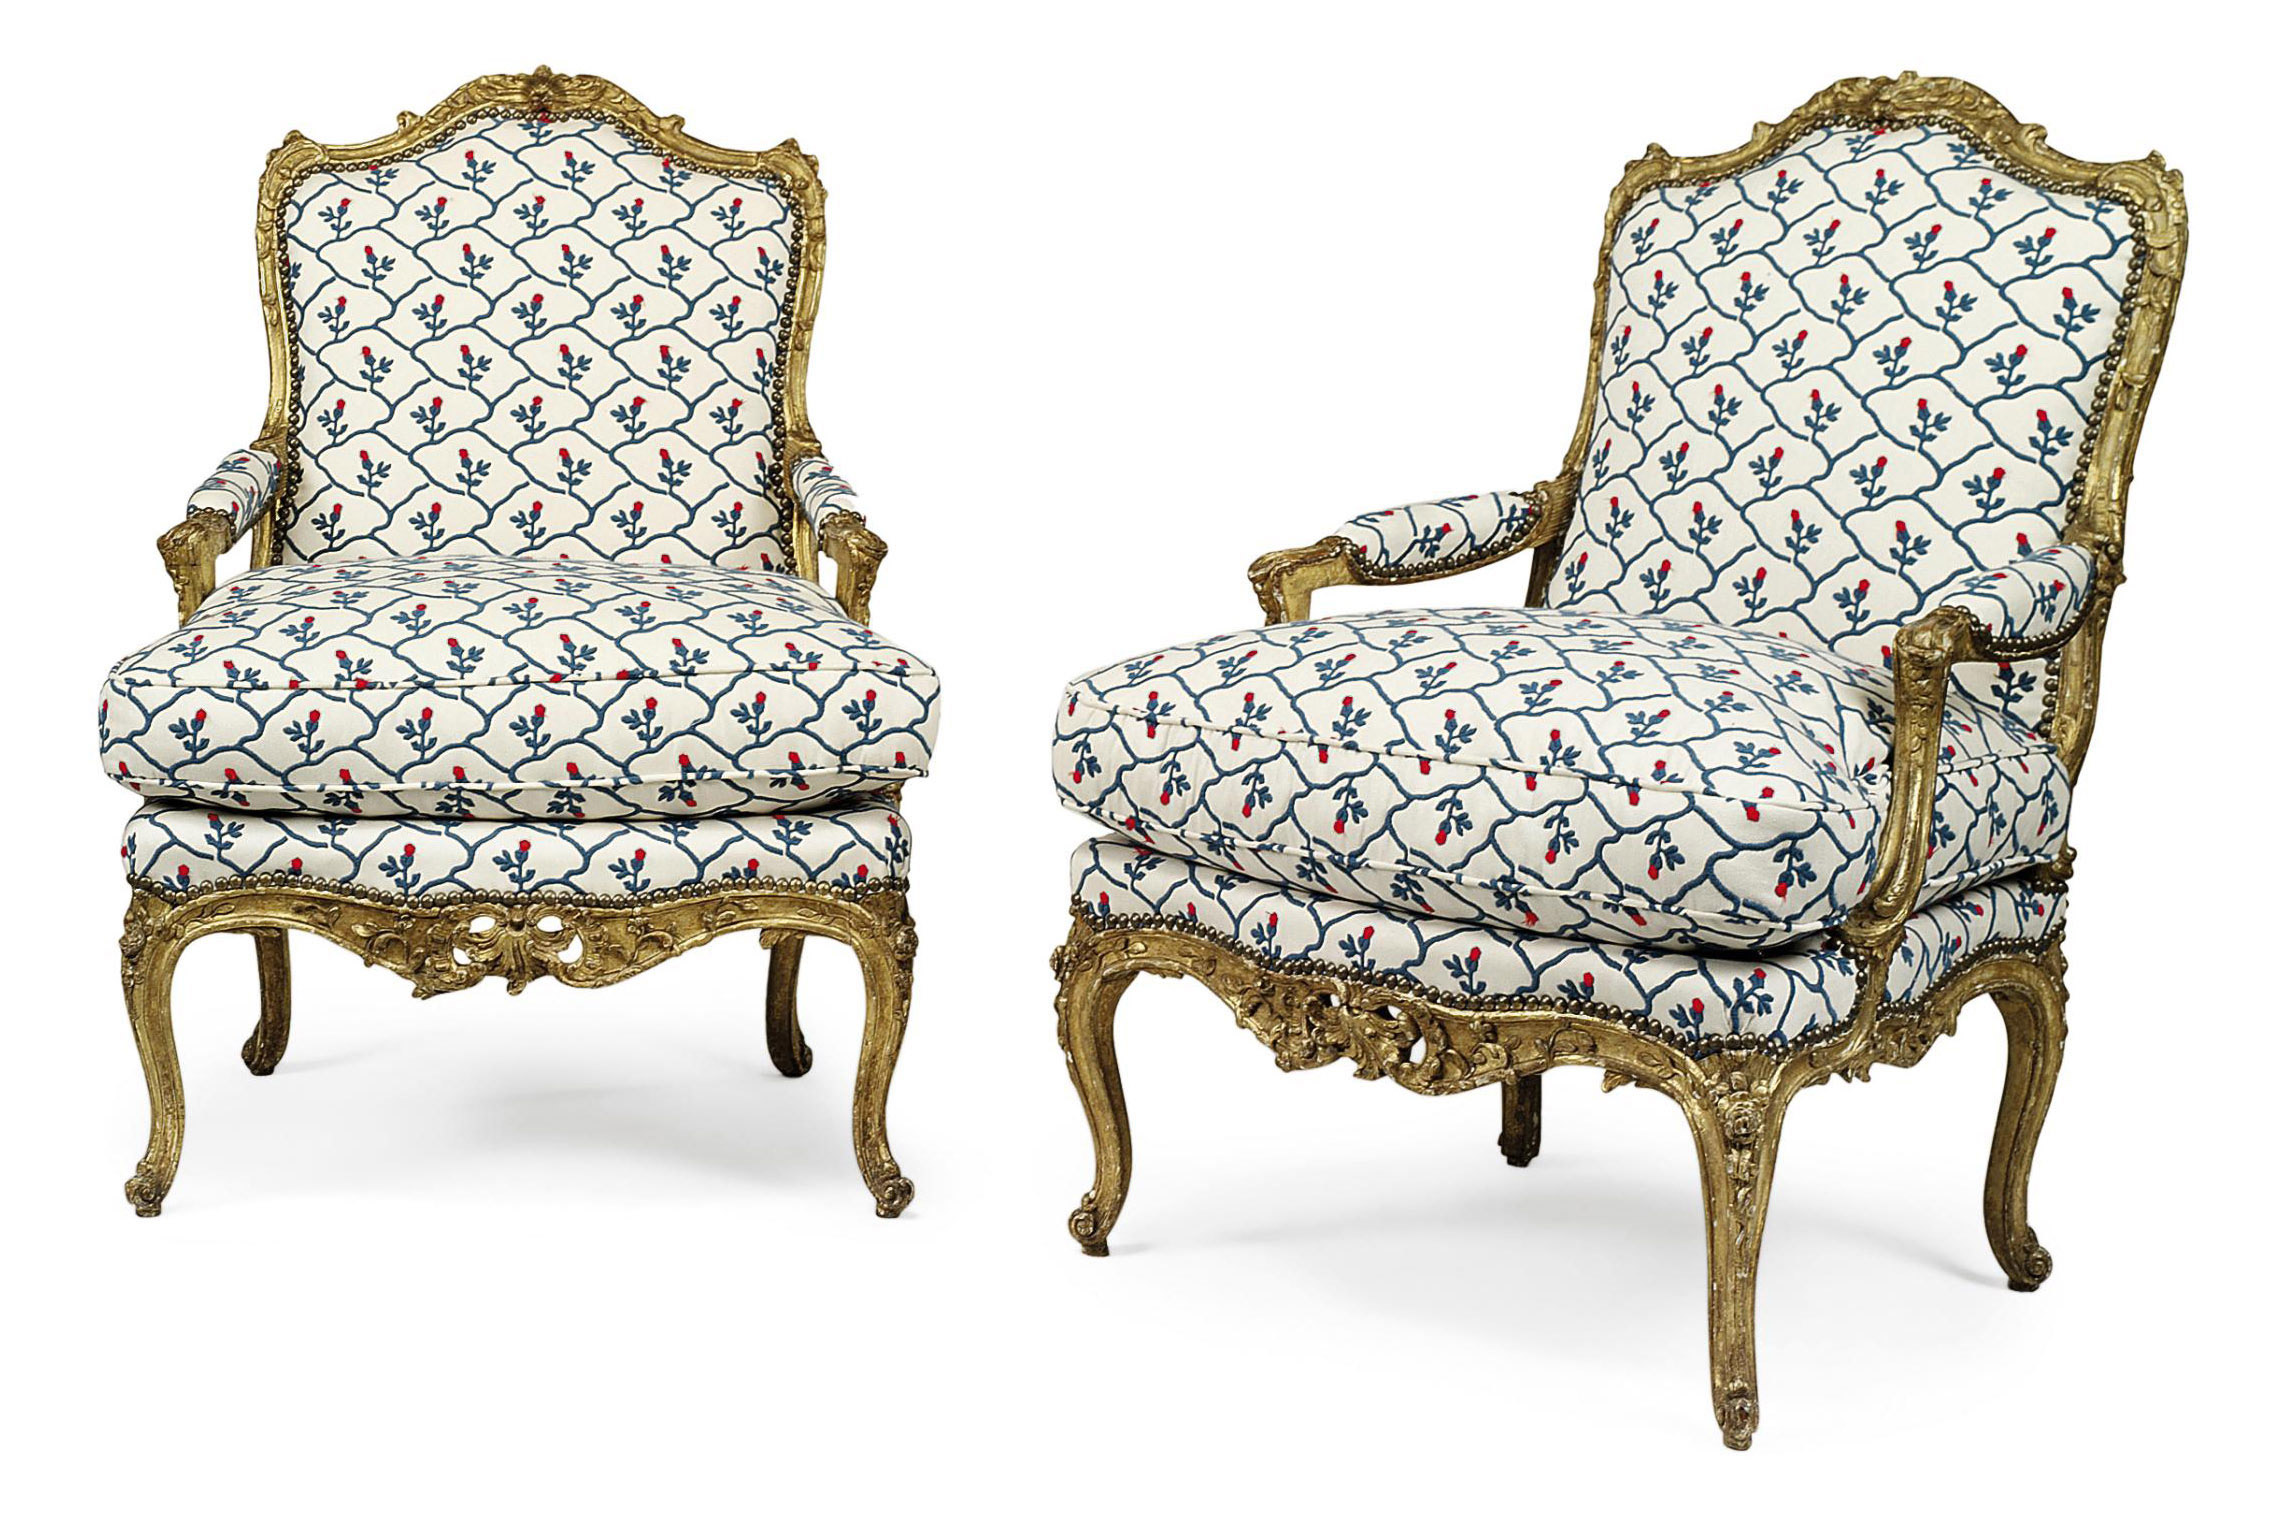 A PAIR OF LOUIS XV GILTWOOD FAUTEUILS